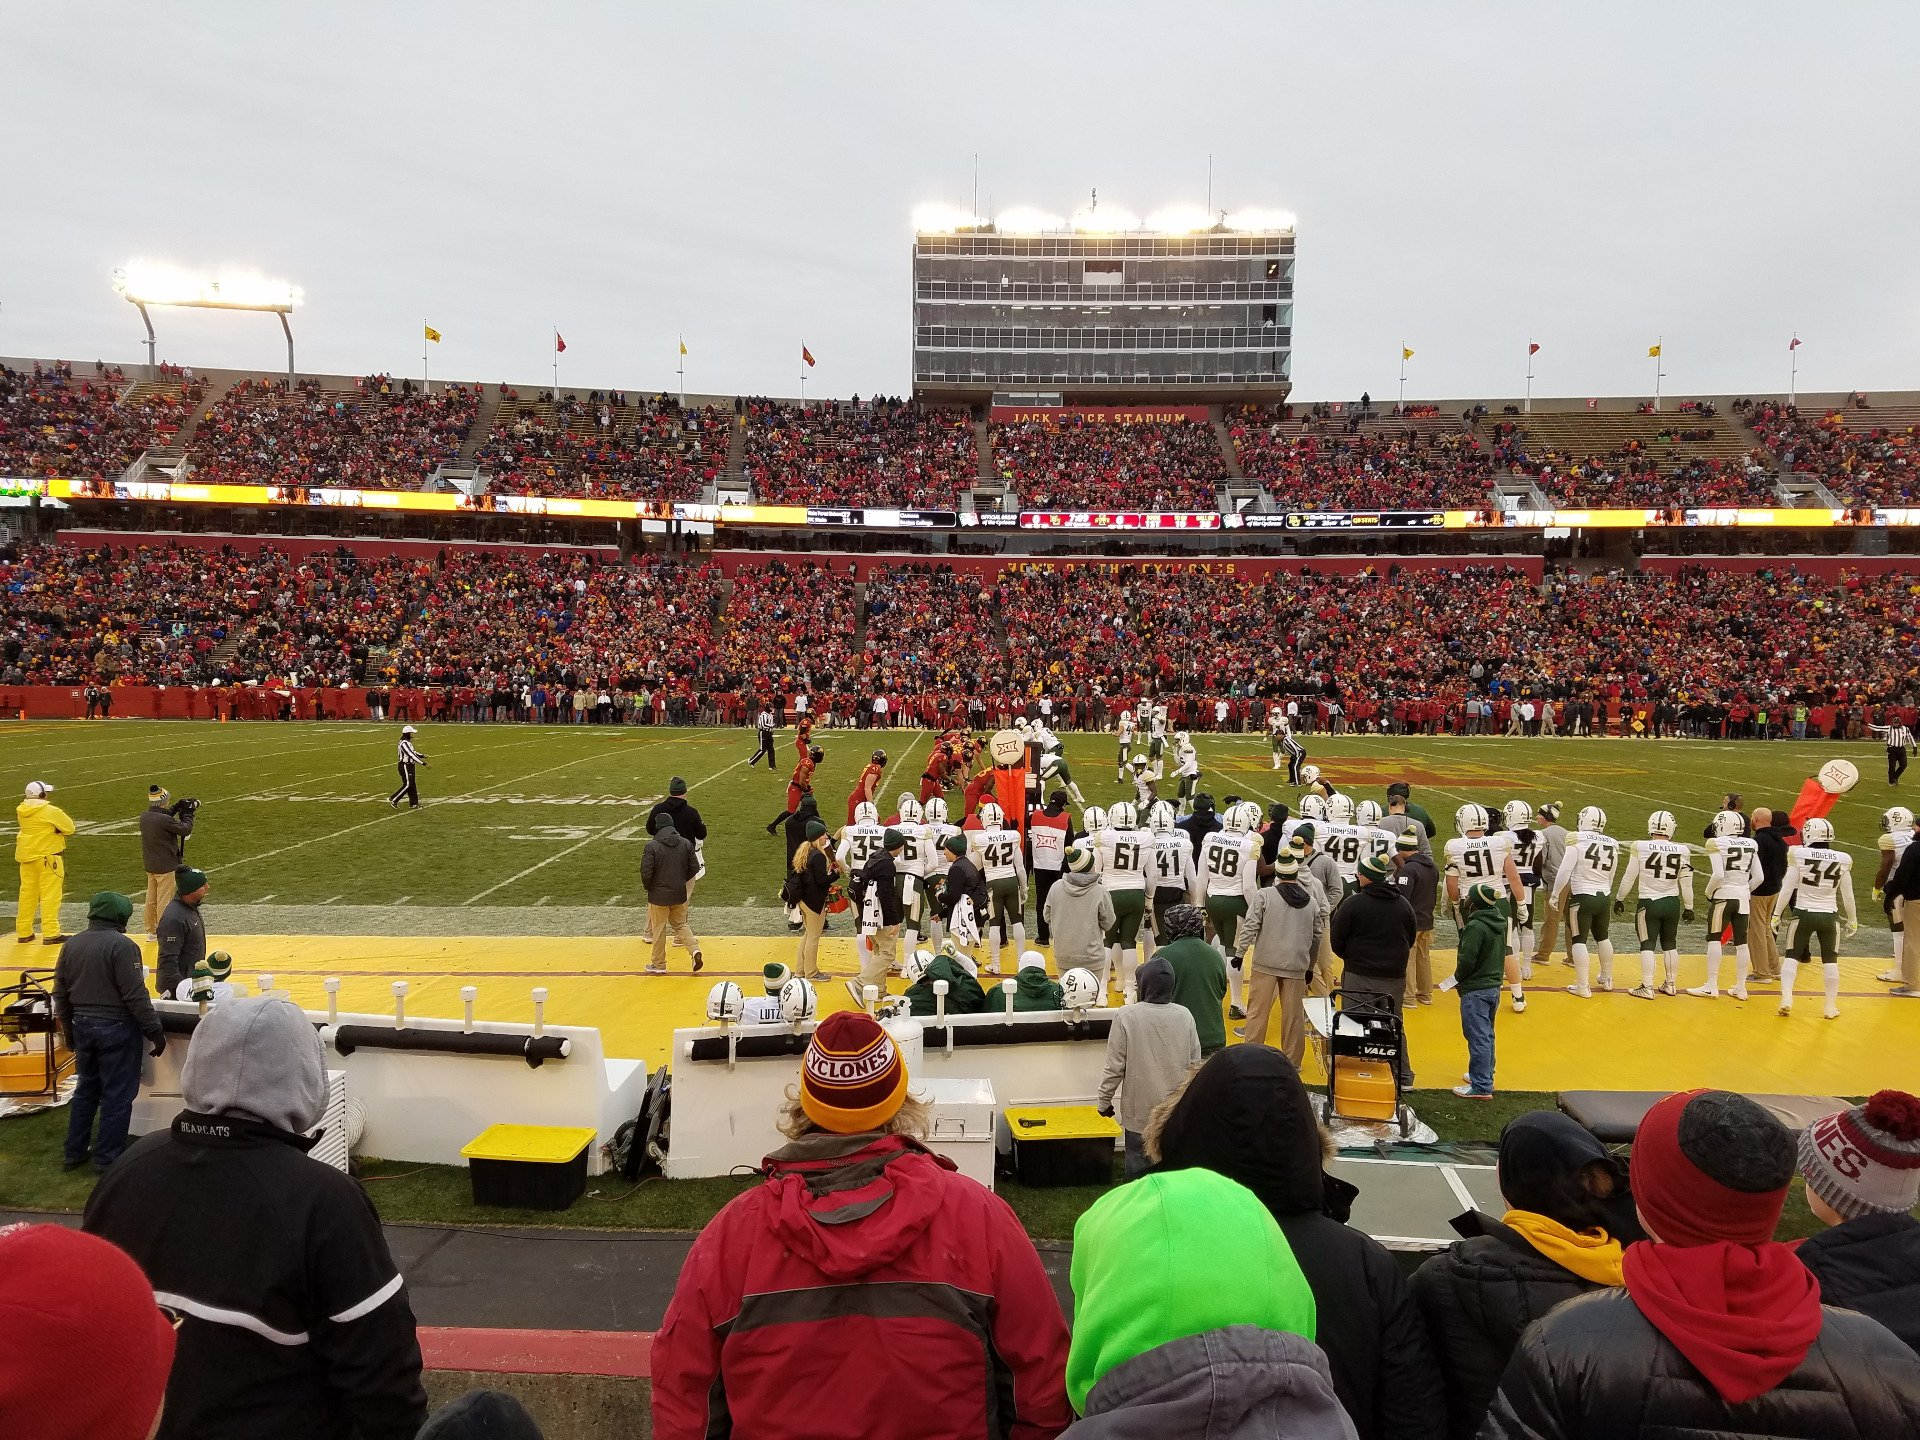 Jack Trice Stadium Section 32 Row 6 Seat 13